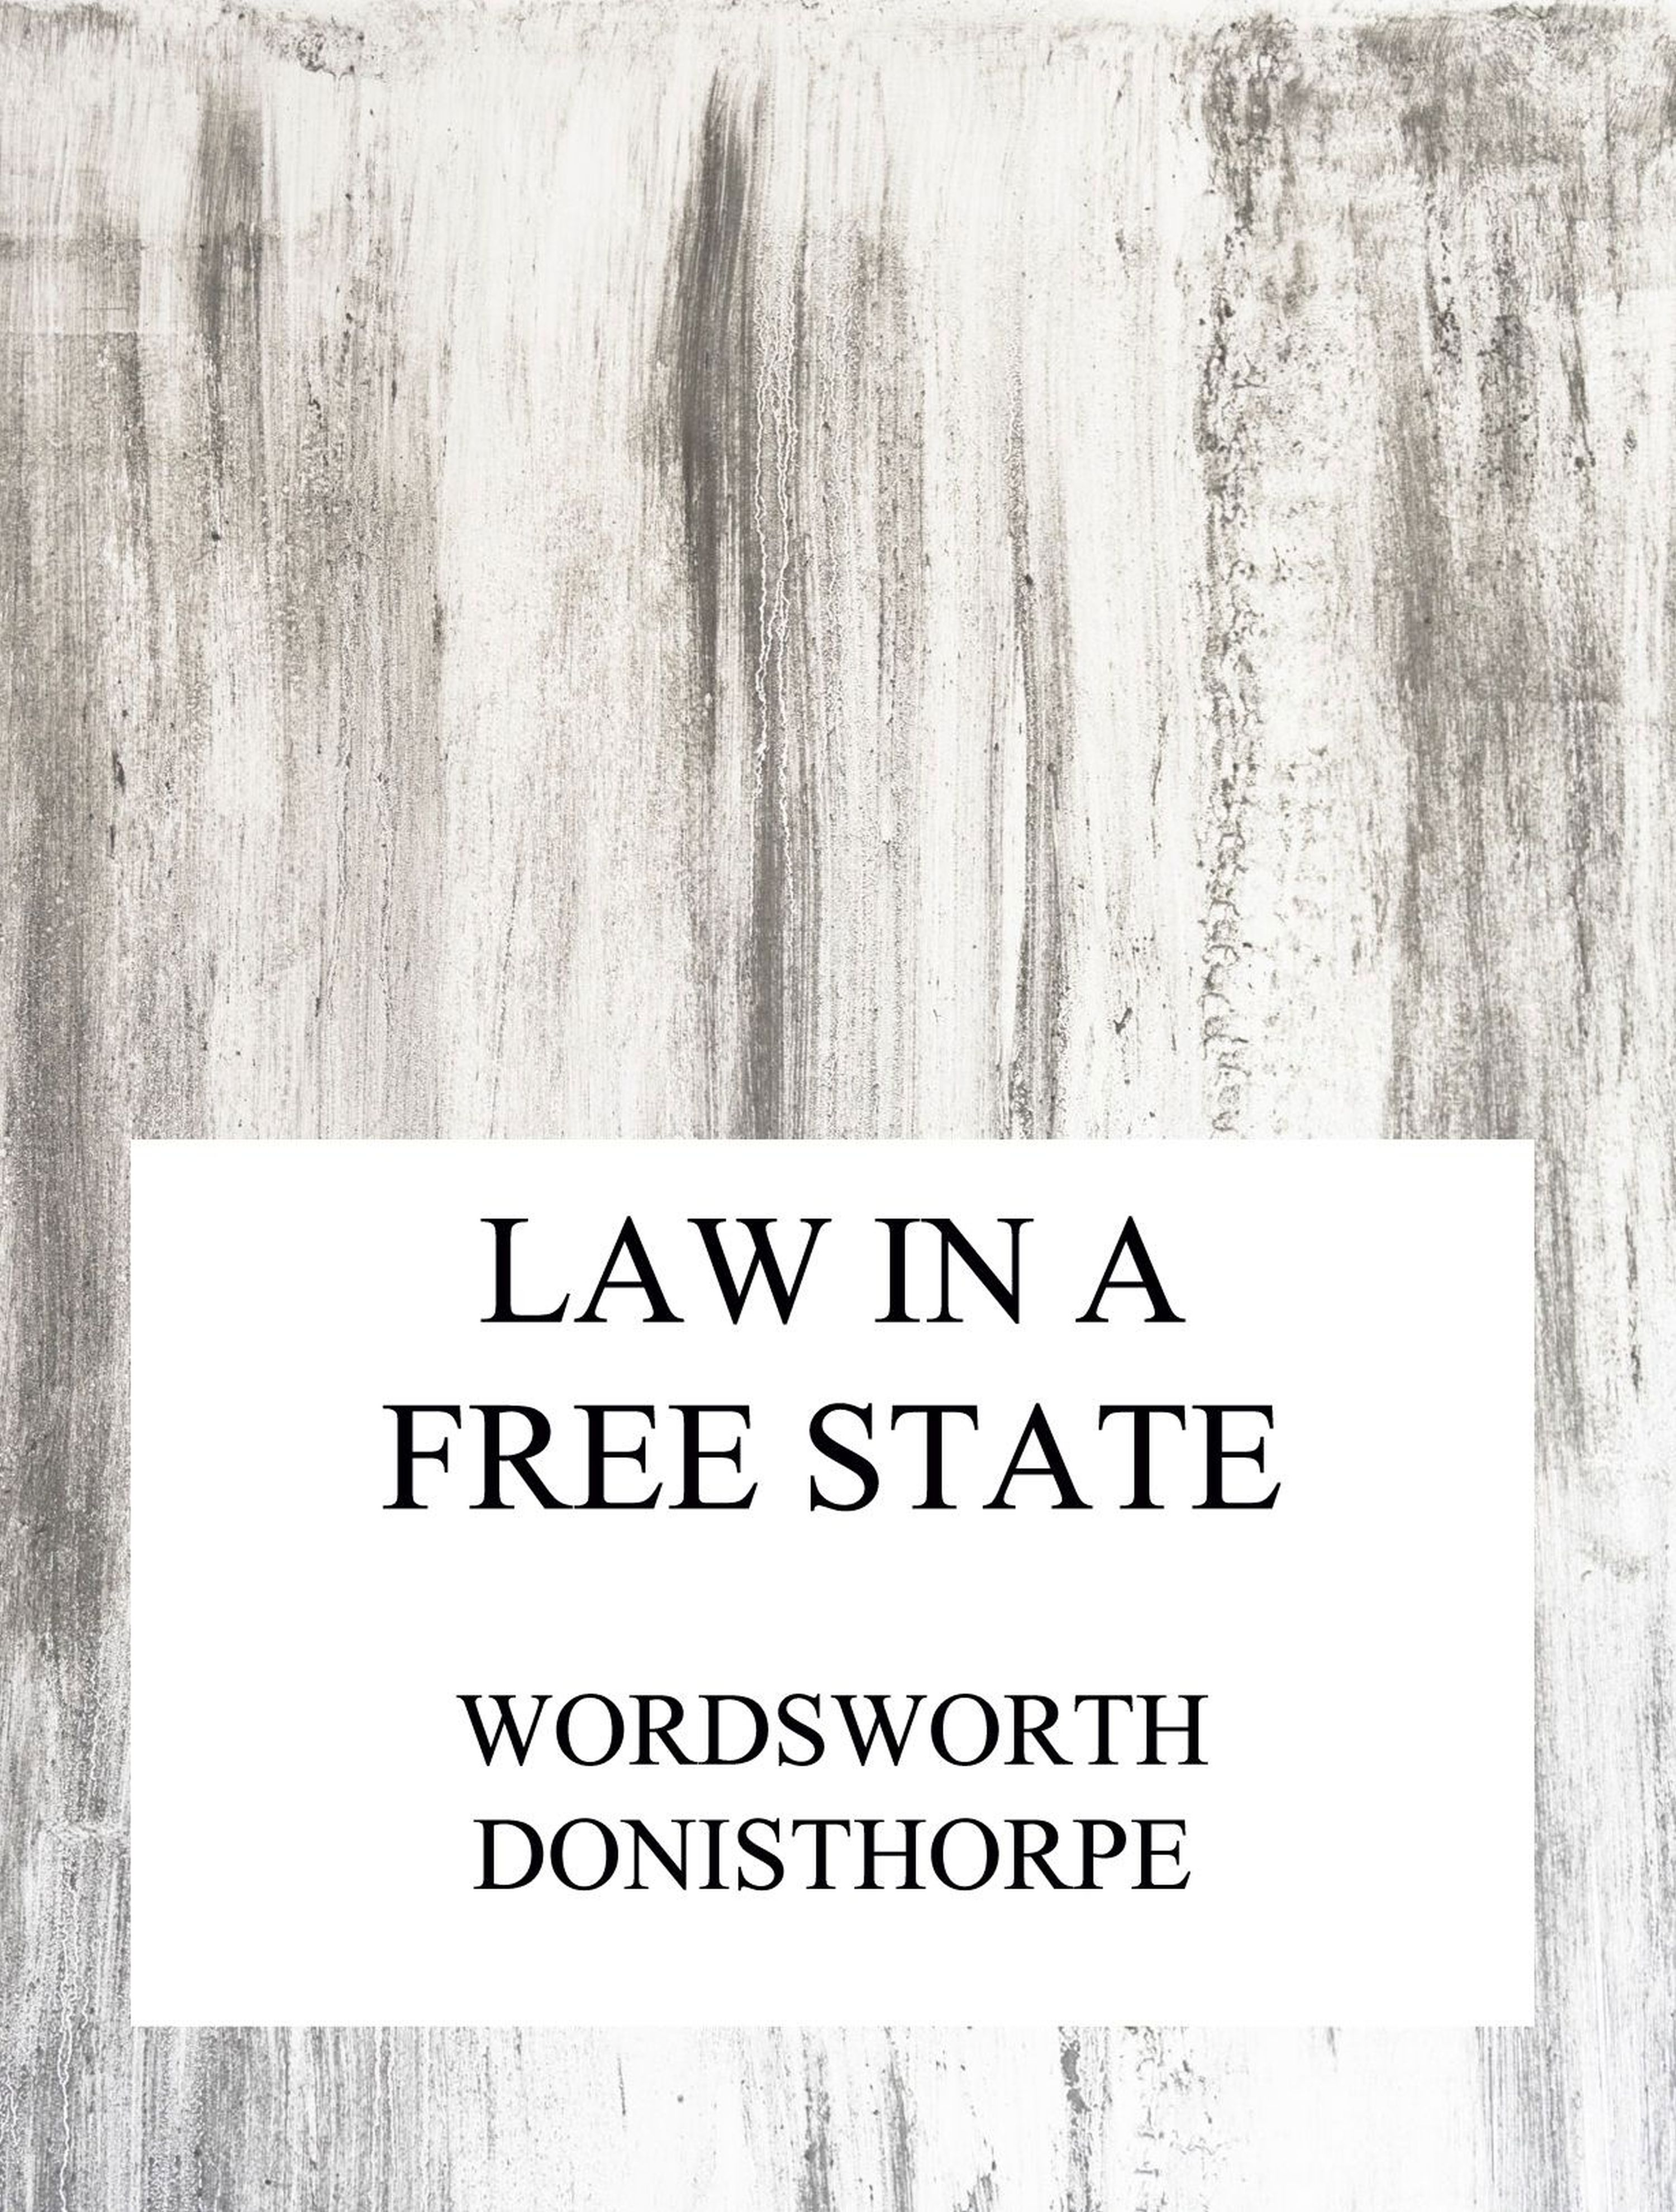 Wordsworth Donisthorpe Law in a free state eye and ear in wordsworth s poetry